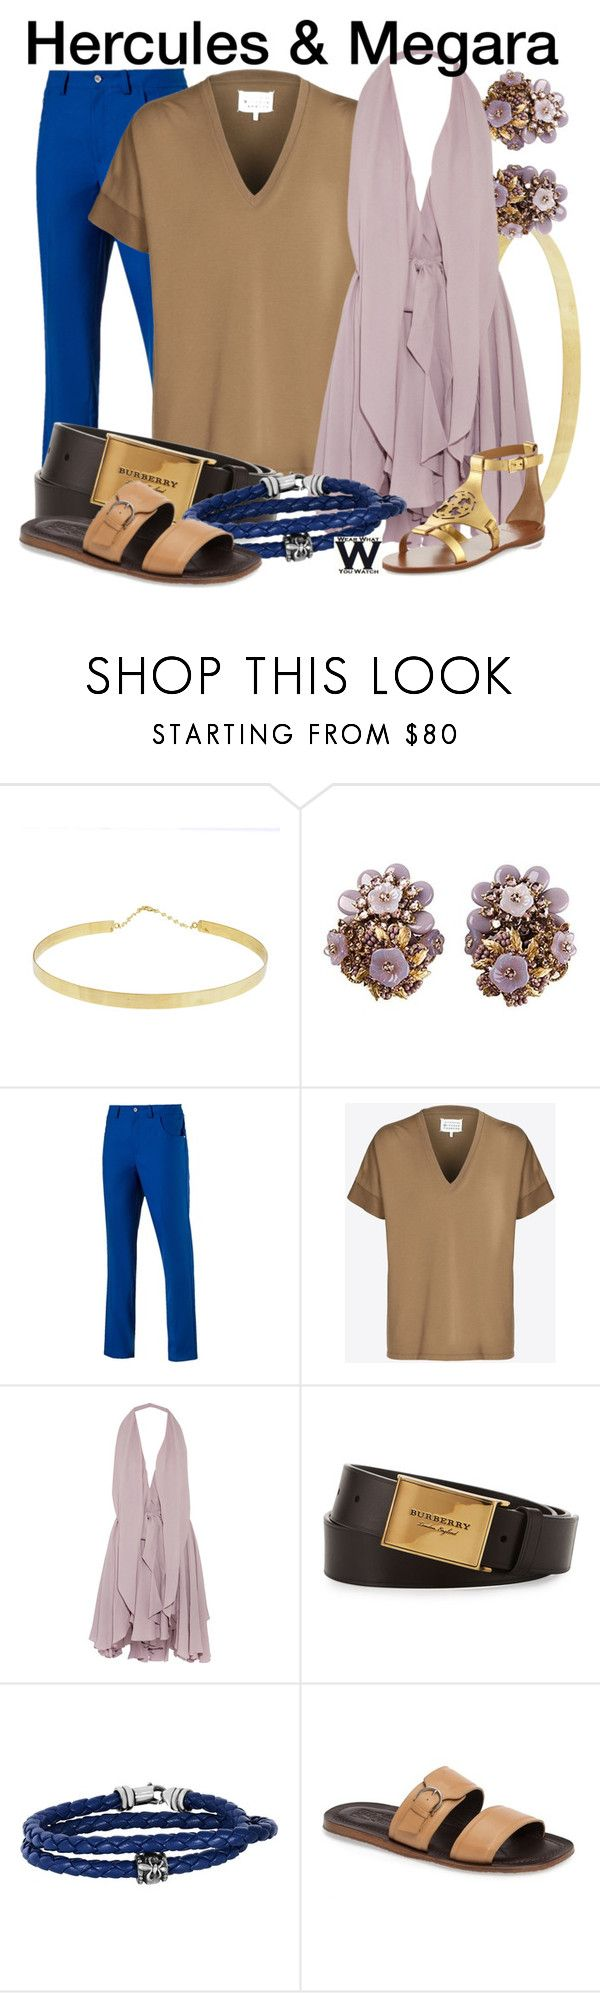 """Hercules"" by wearwhatyouwatch ❤ liked on Polyvore featuring Lana, Puma, Maison Margiela, Maria Grachvogel, Burberry, Phillip Gavriel, Salvatore Ferragamo, Tory Burch, disney and wearwhatyouwatch"